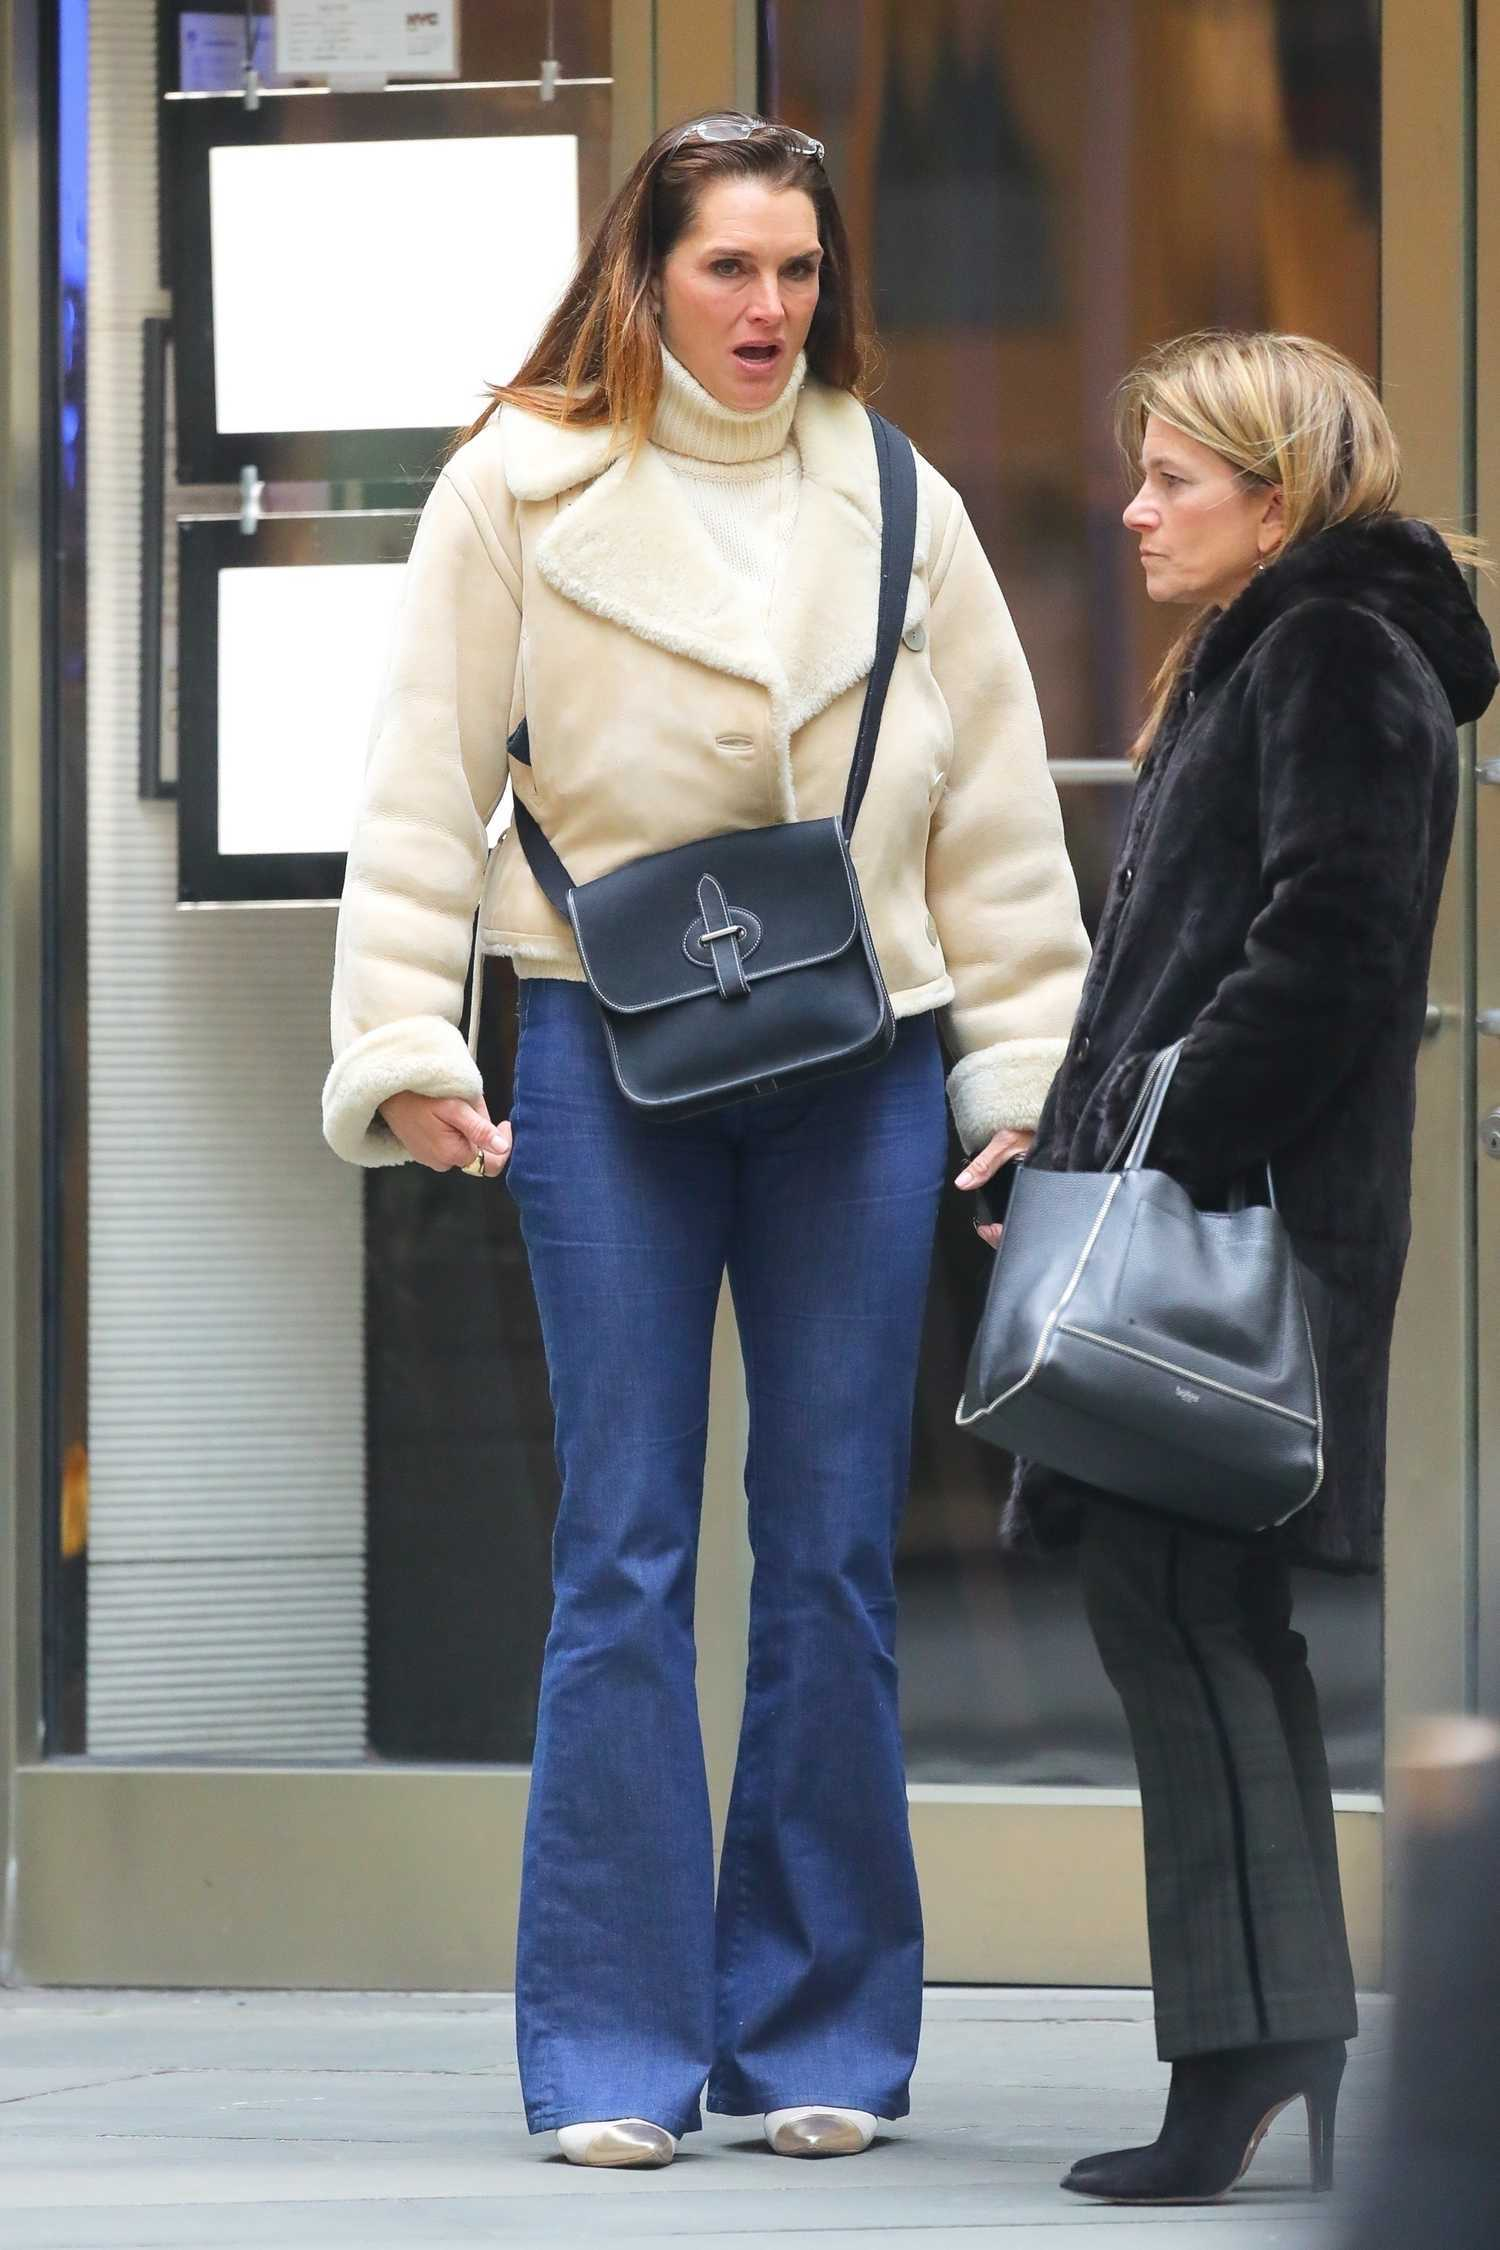 Brooke Shields Arrives at the Gym in New York - Celeb Donut